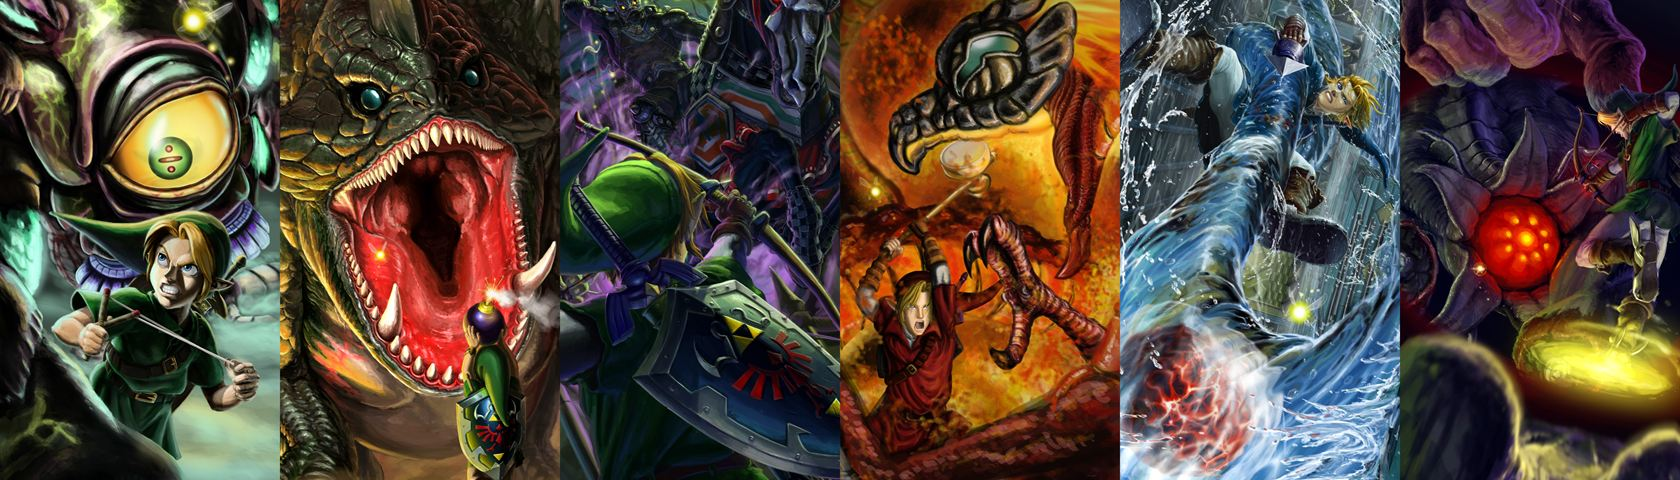 Link vs The Bosses